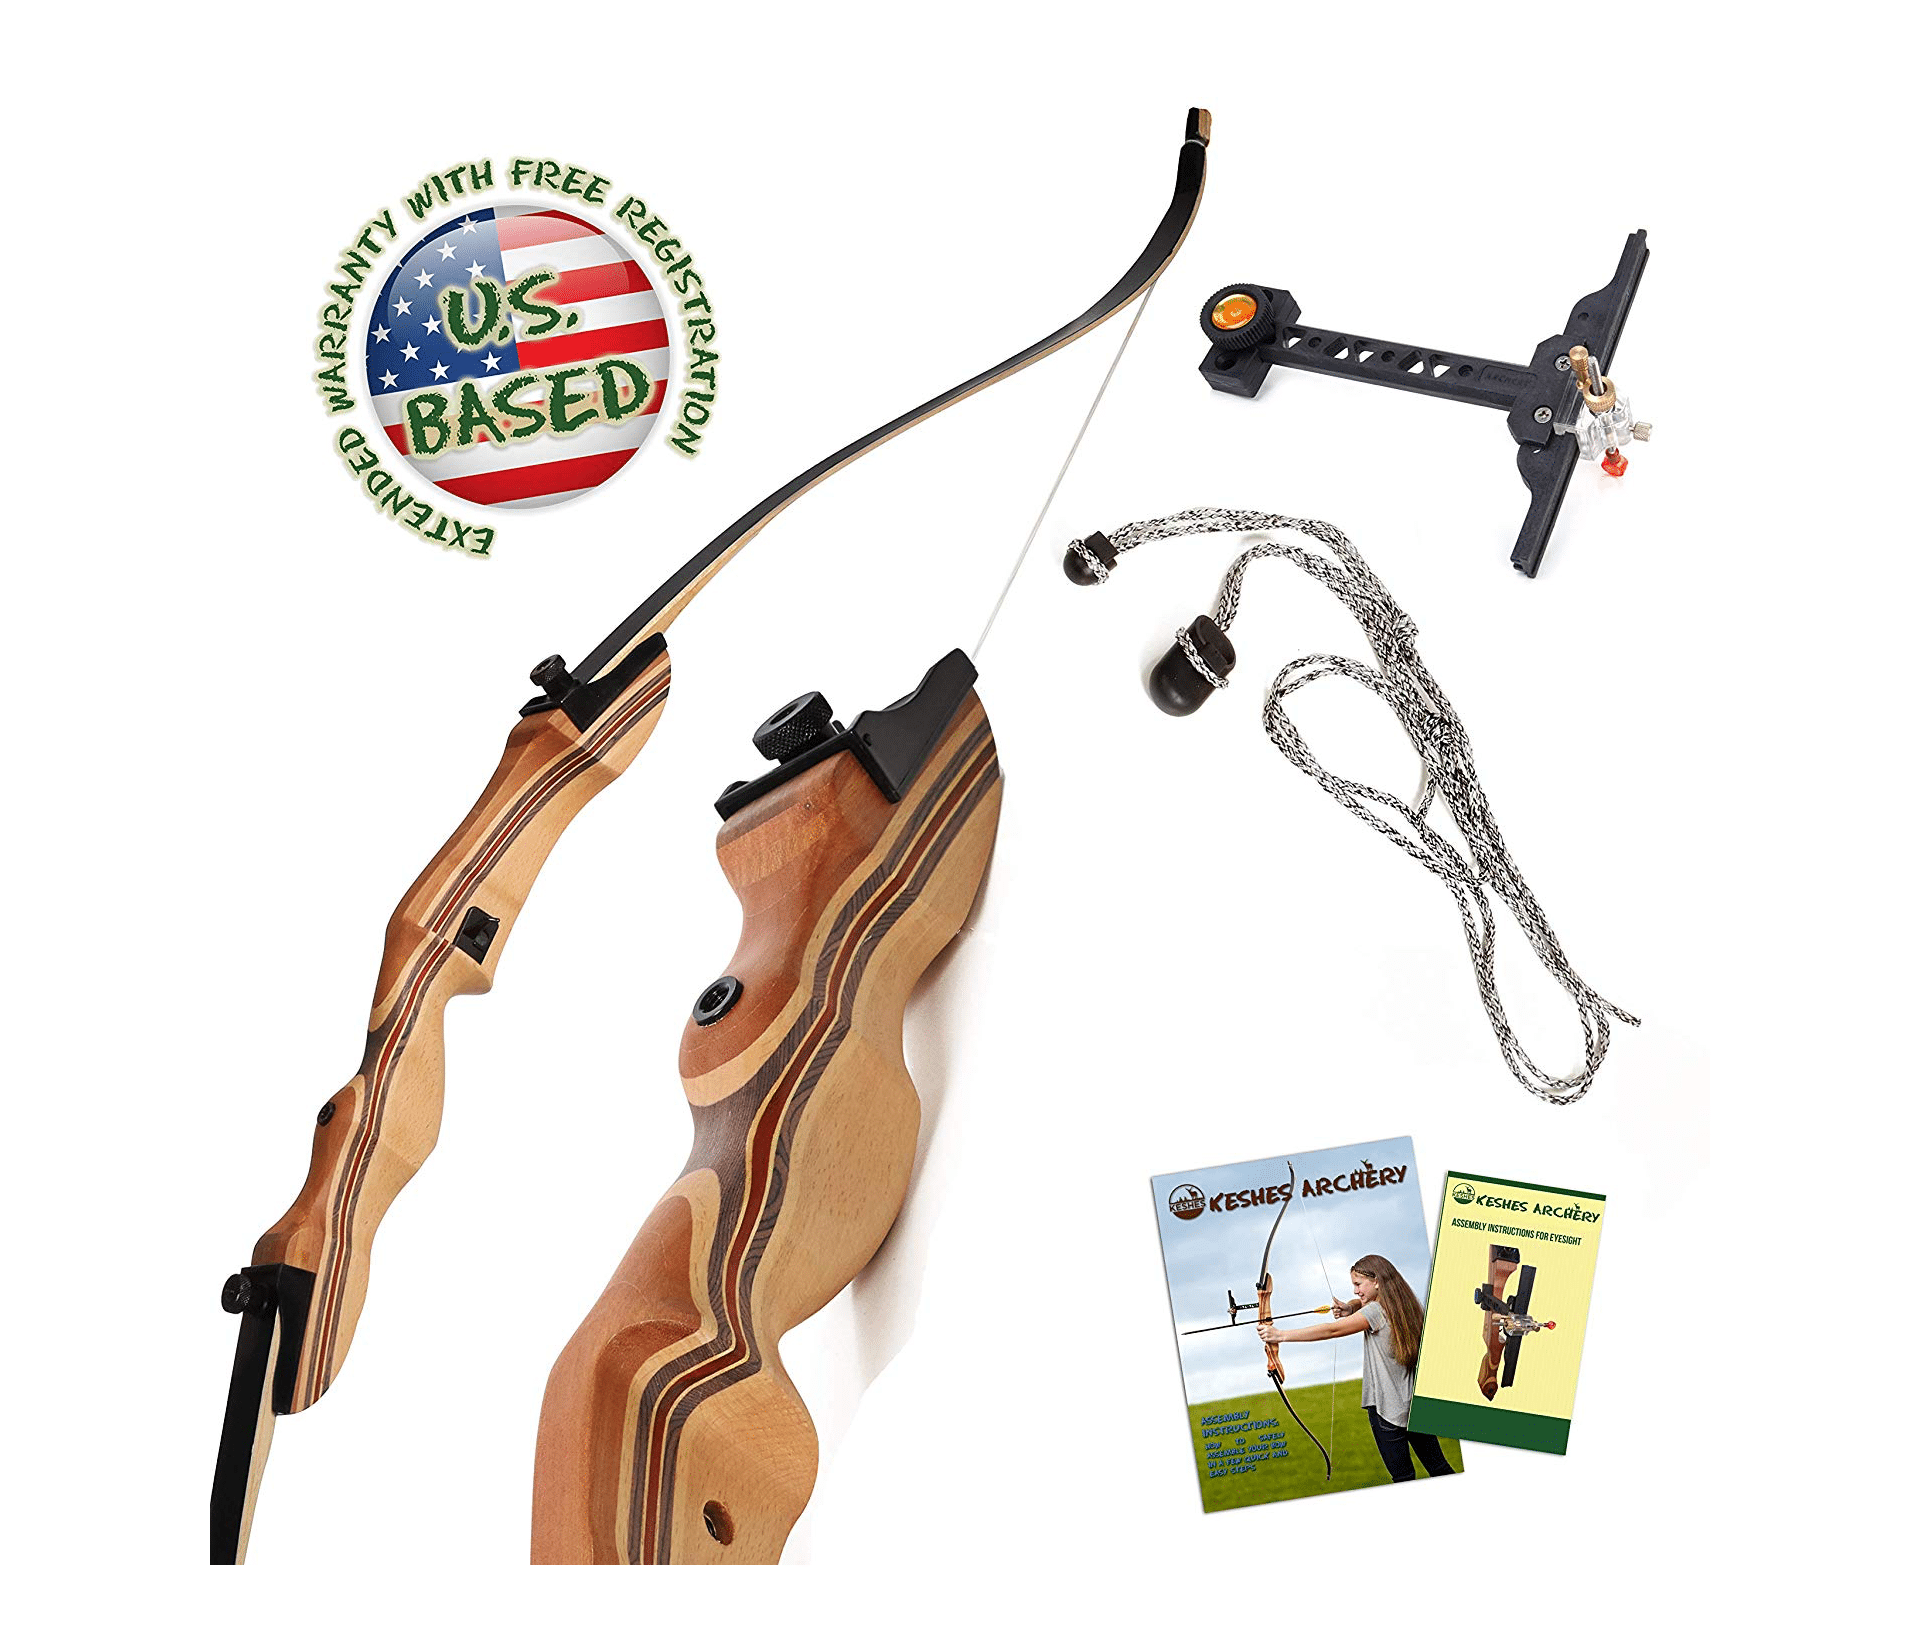 KESHES Archery Carbon Hunting Arrows